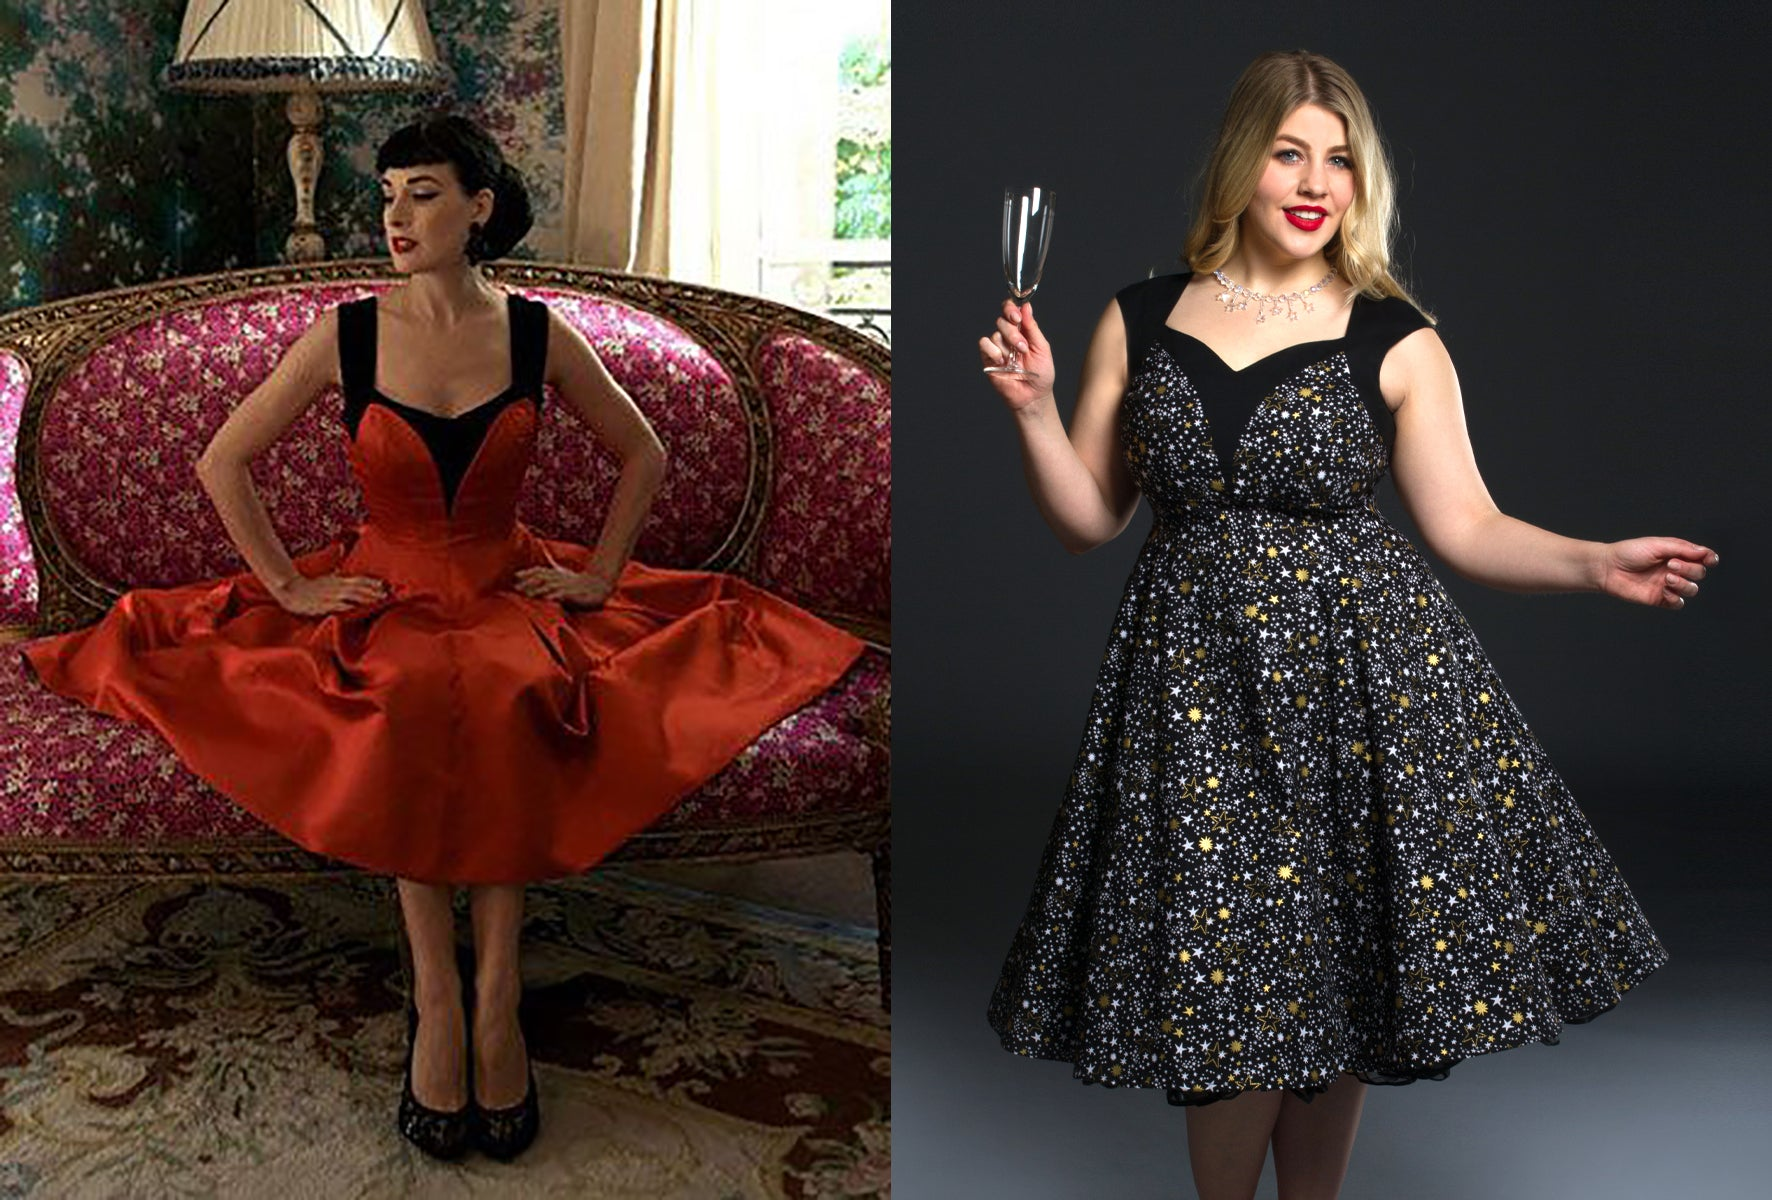 Dita Von Teese in Red and Black Dress at Home beside Cherry Velvet Dita dress in Golden Galaxy